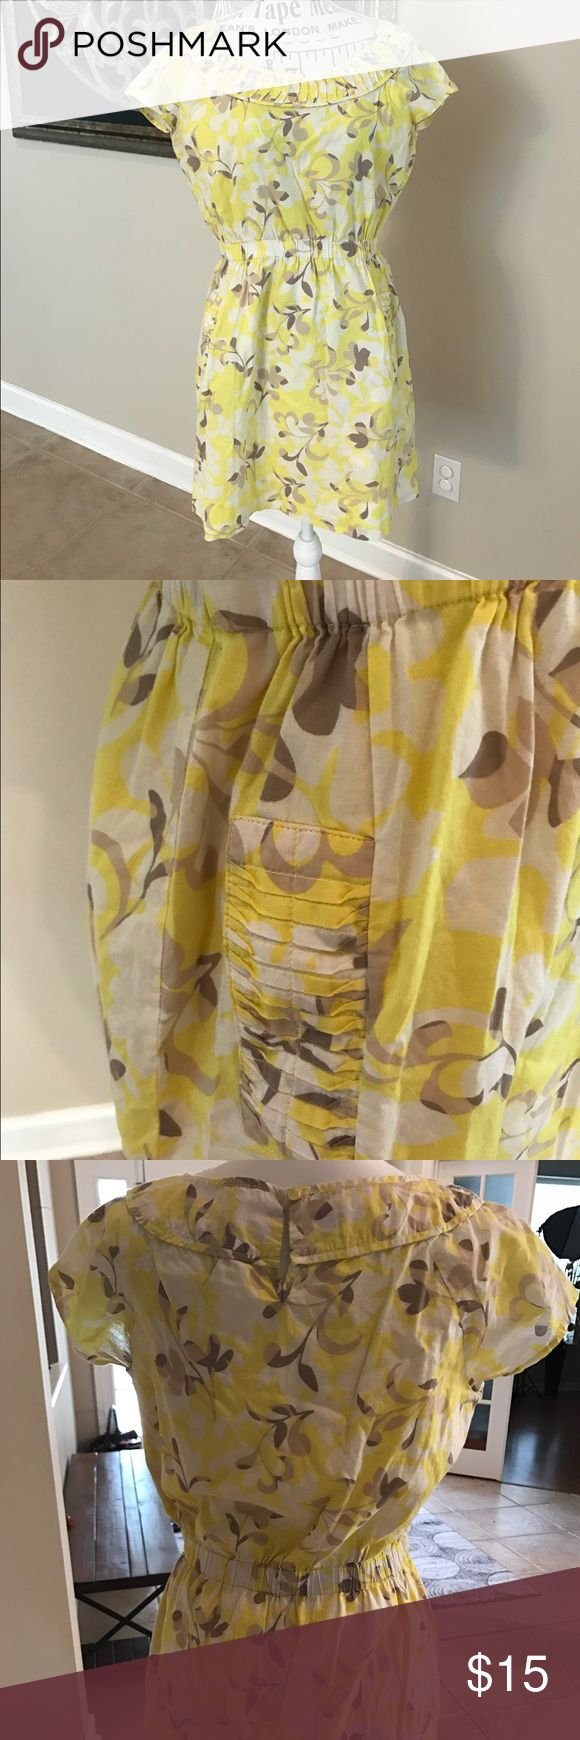 Yellow and Cream Summer Dress Cotton lined dress with nice details around neck and pockets. Has elastic waistband. Old Navy Dresses Mini